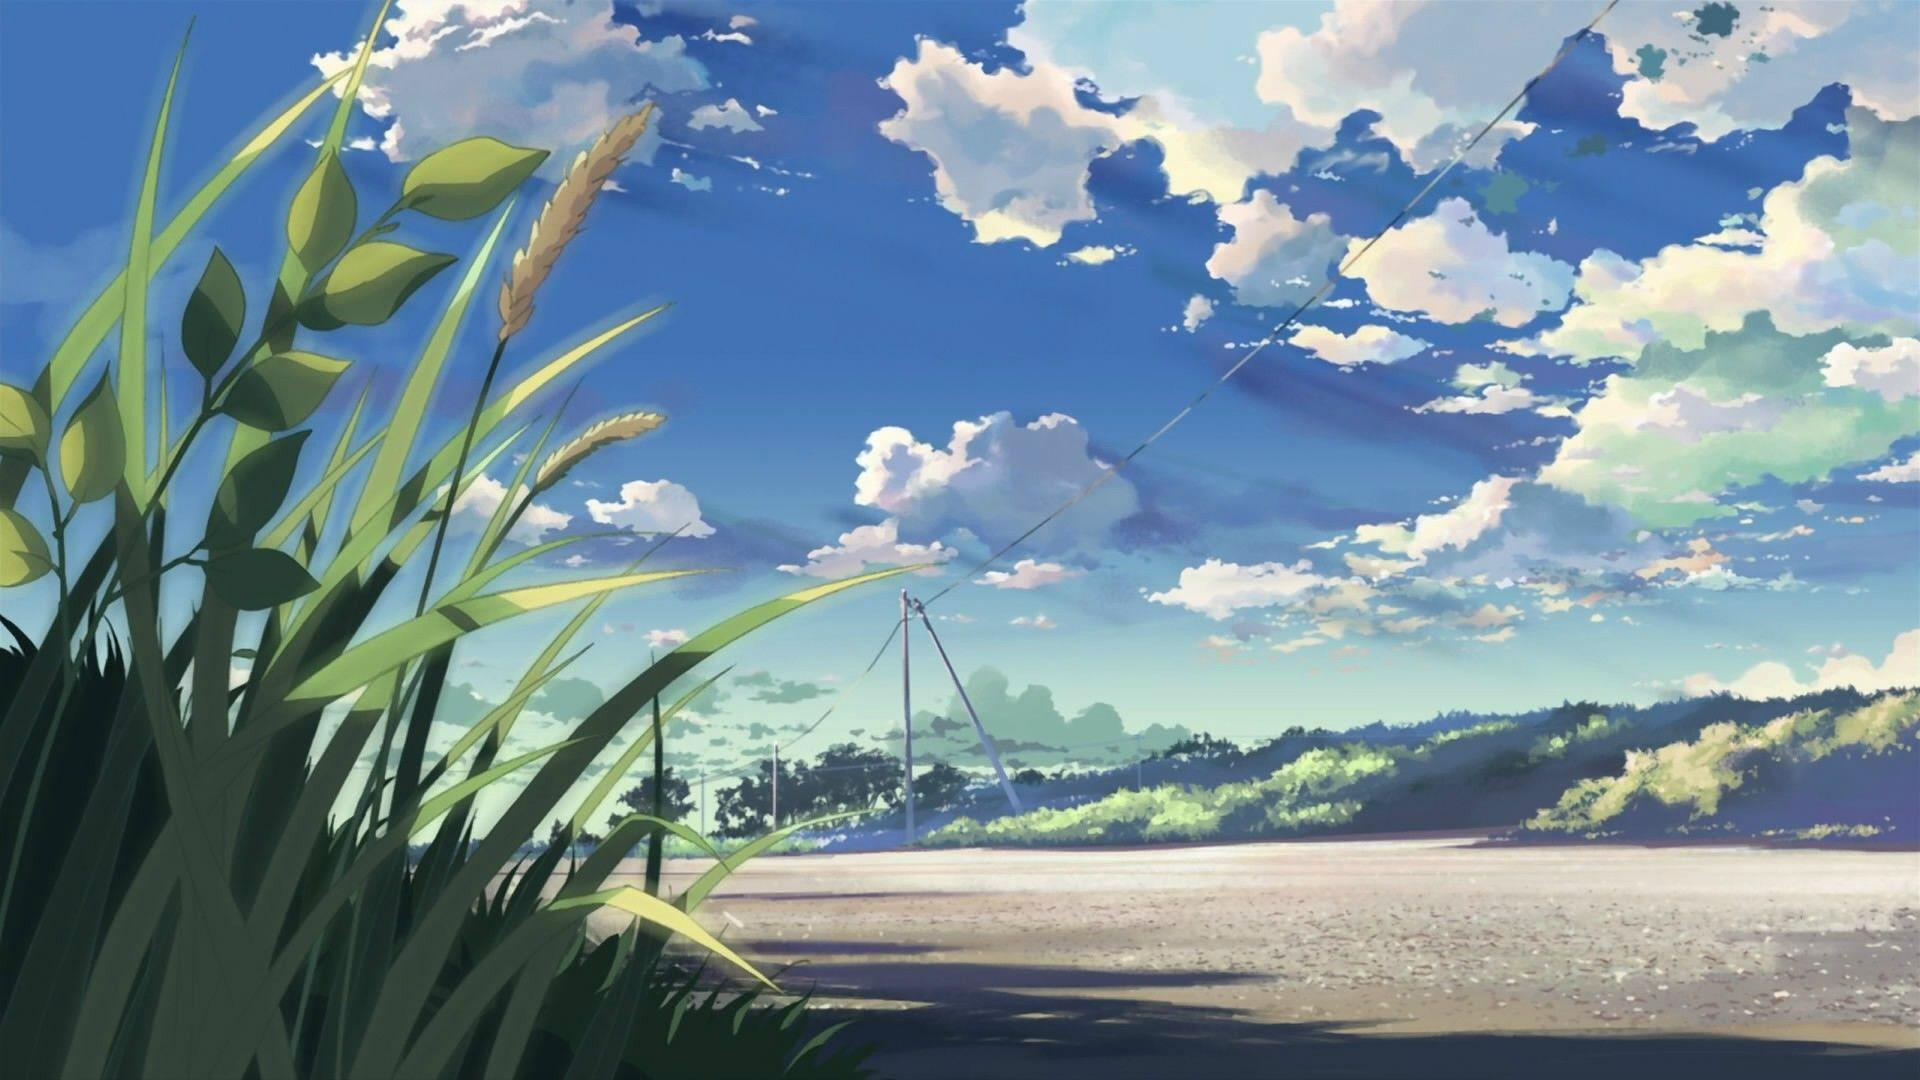 Aesthetic Anime Scenery Hd Wallpapers Wallpaper Cave